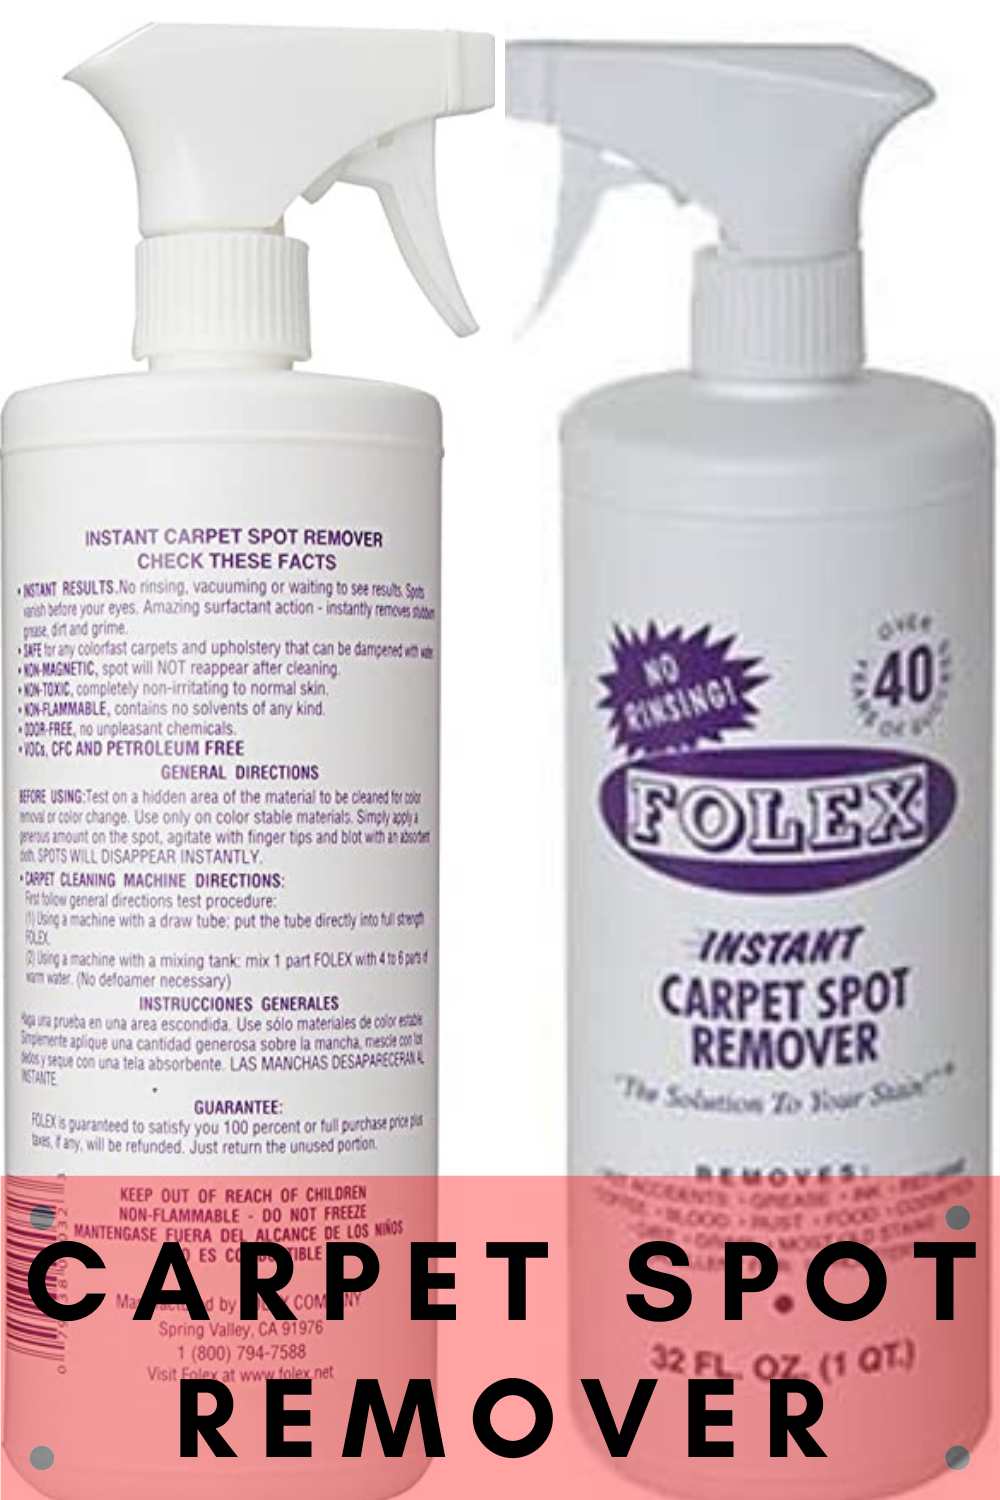 Folex Carpet Spot Remover By Folex In 2020 Carpet Spot Remover How To Remove Tough Spots